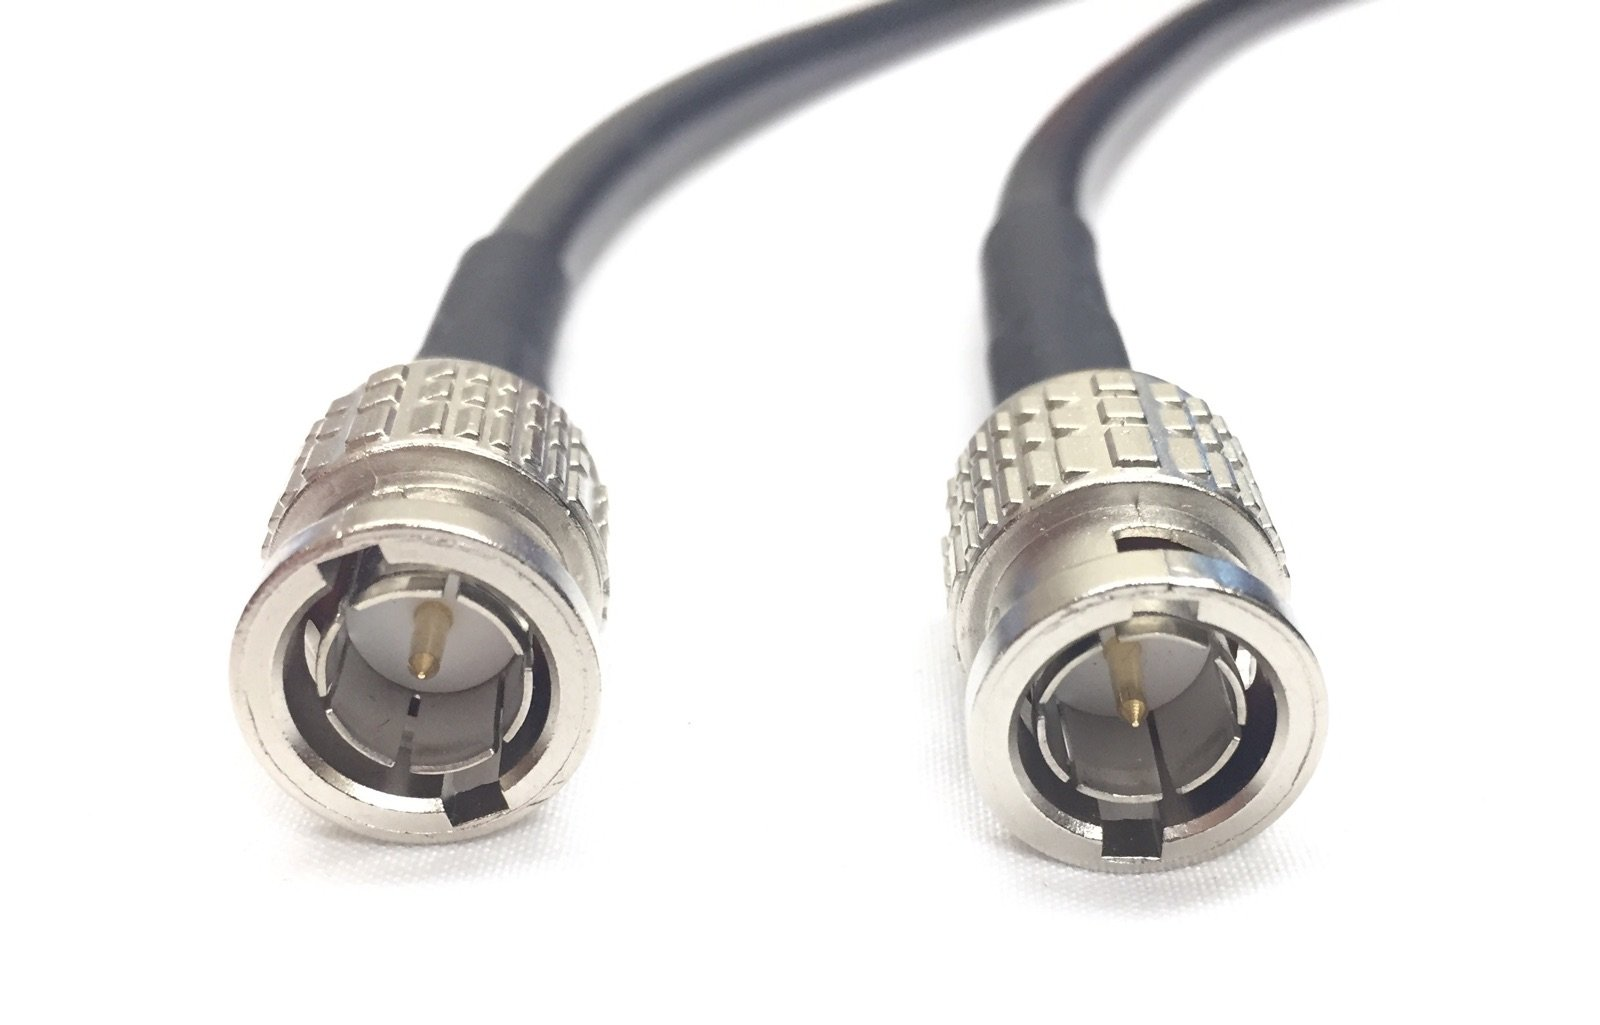 200 Foot HD-SDI RG59 BNC to BNC 3GHZ Canare L-4CFB Cable